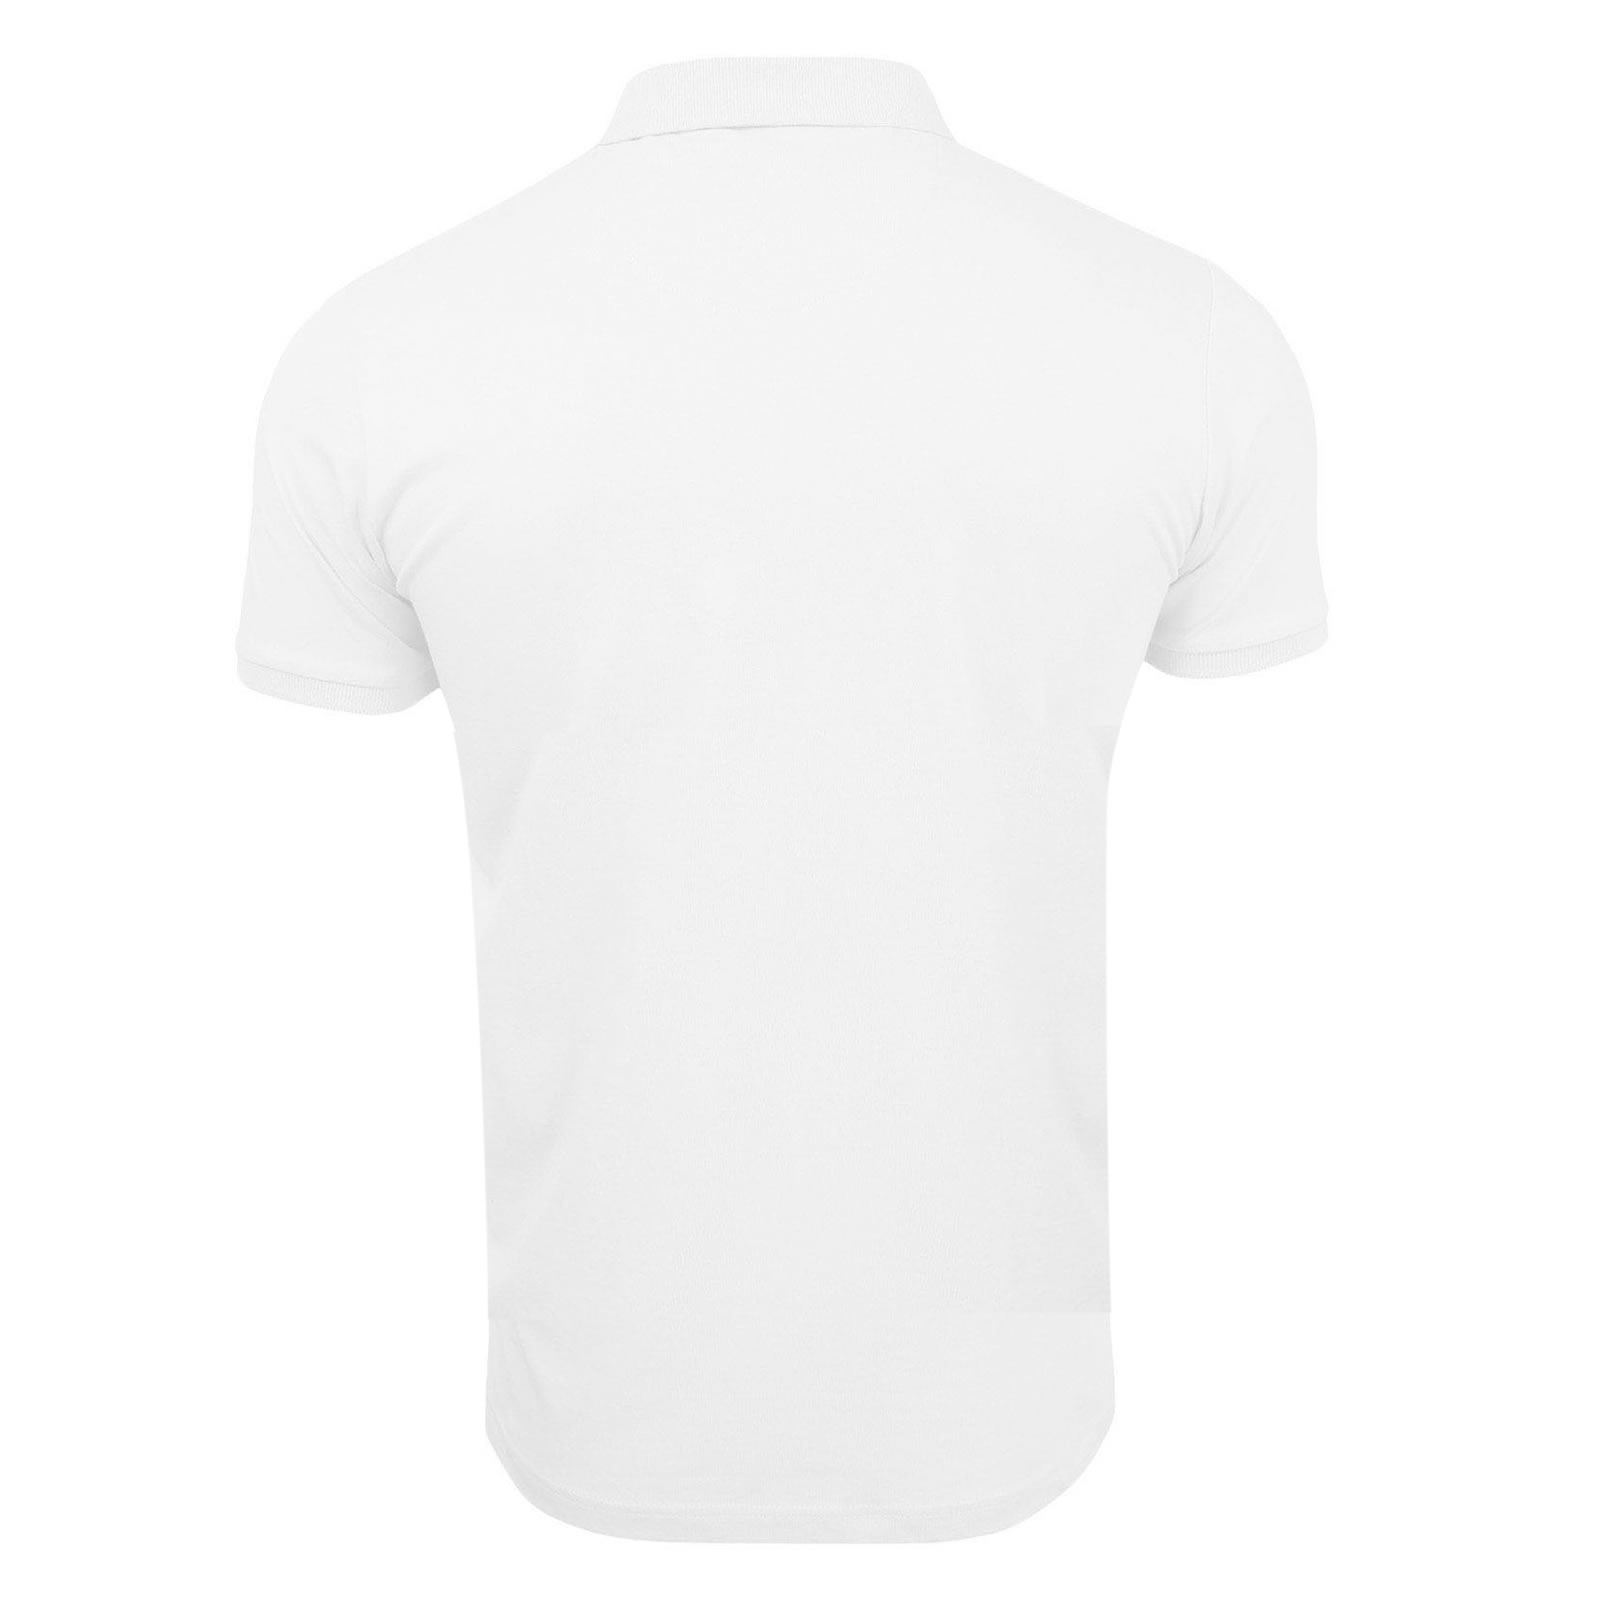 Mens-Polo-T-Shirt-Brave-Soul-Julius-Cotton-Collared-Short-Sleeve-Casual-Top thumbnail 33